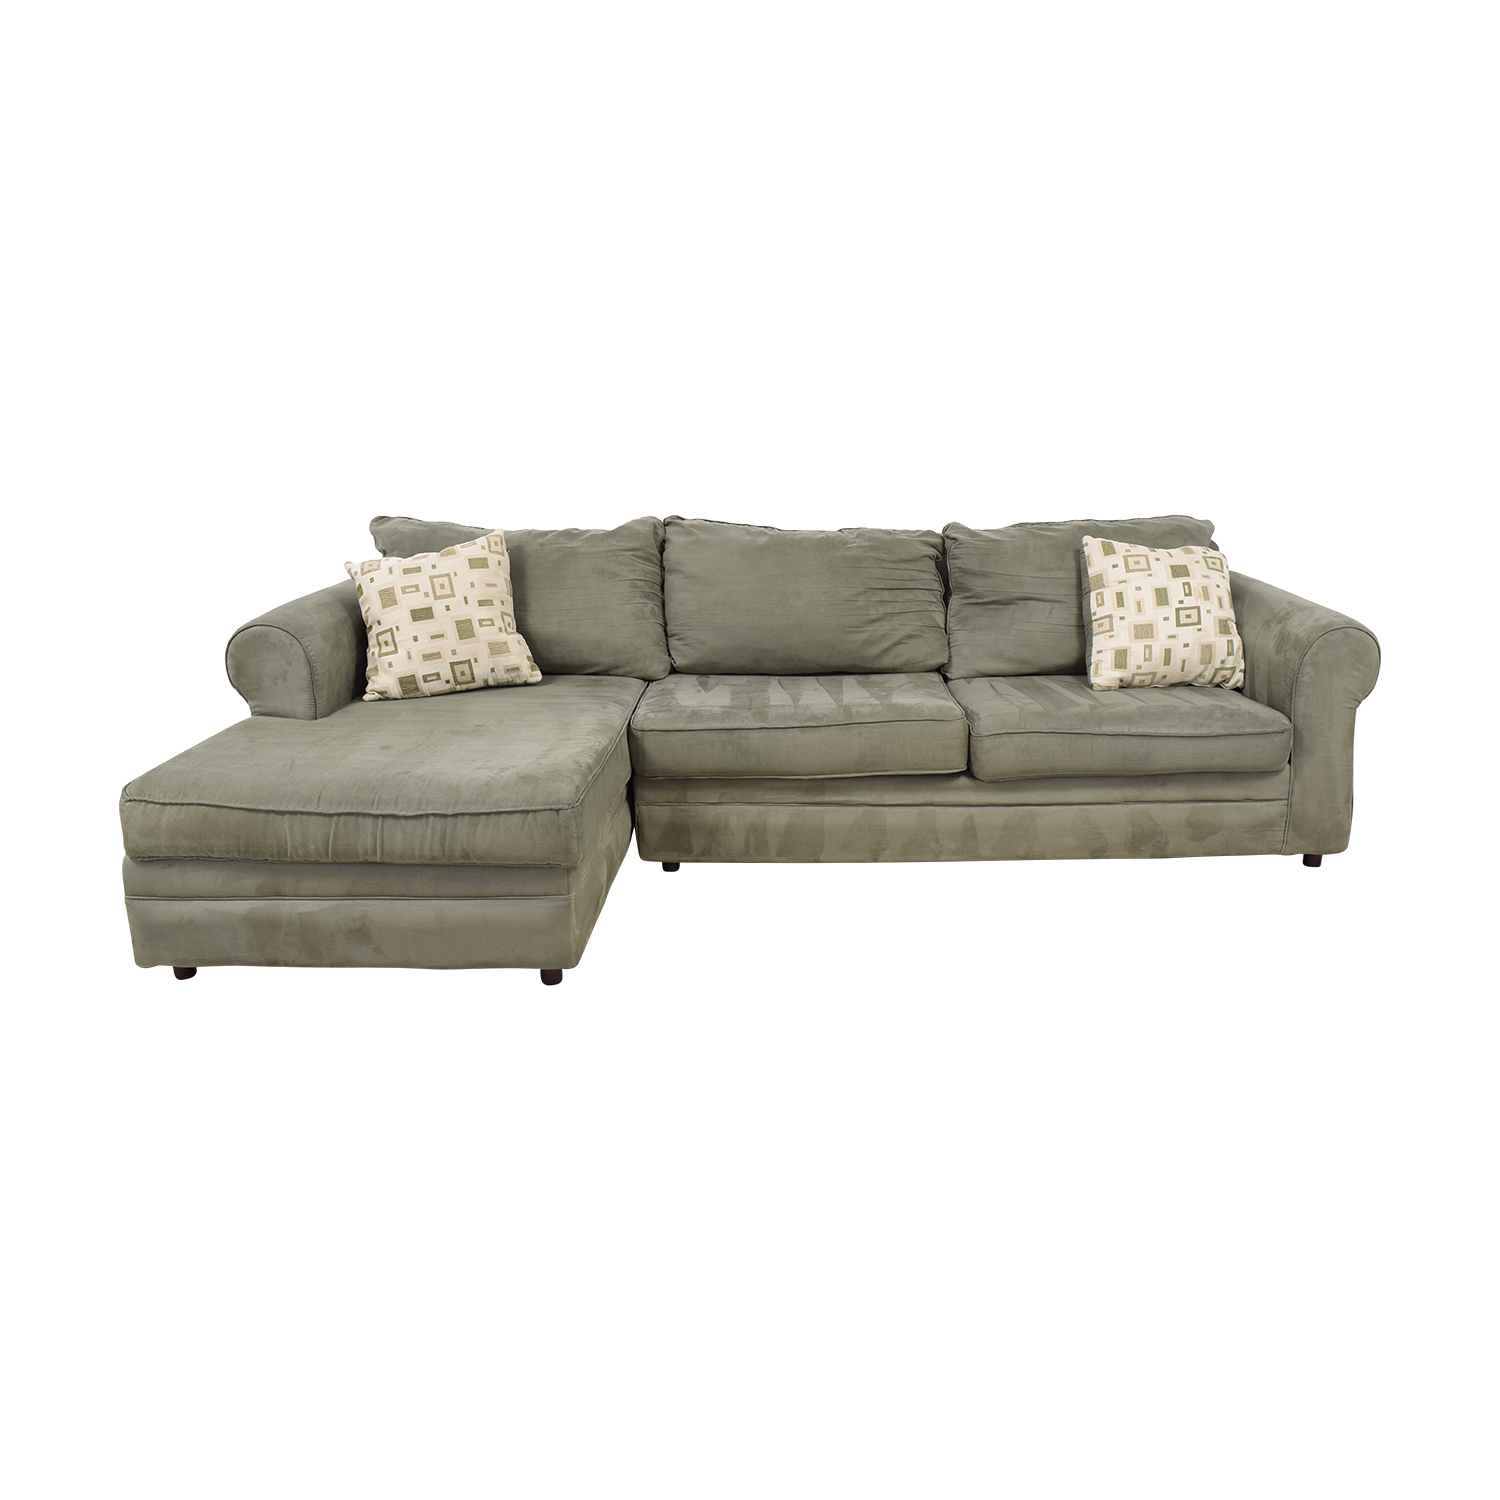 March Furniture March Furniture Green Left Arm Chaise Sectional Sofas